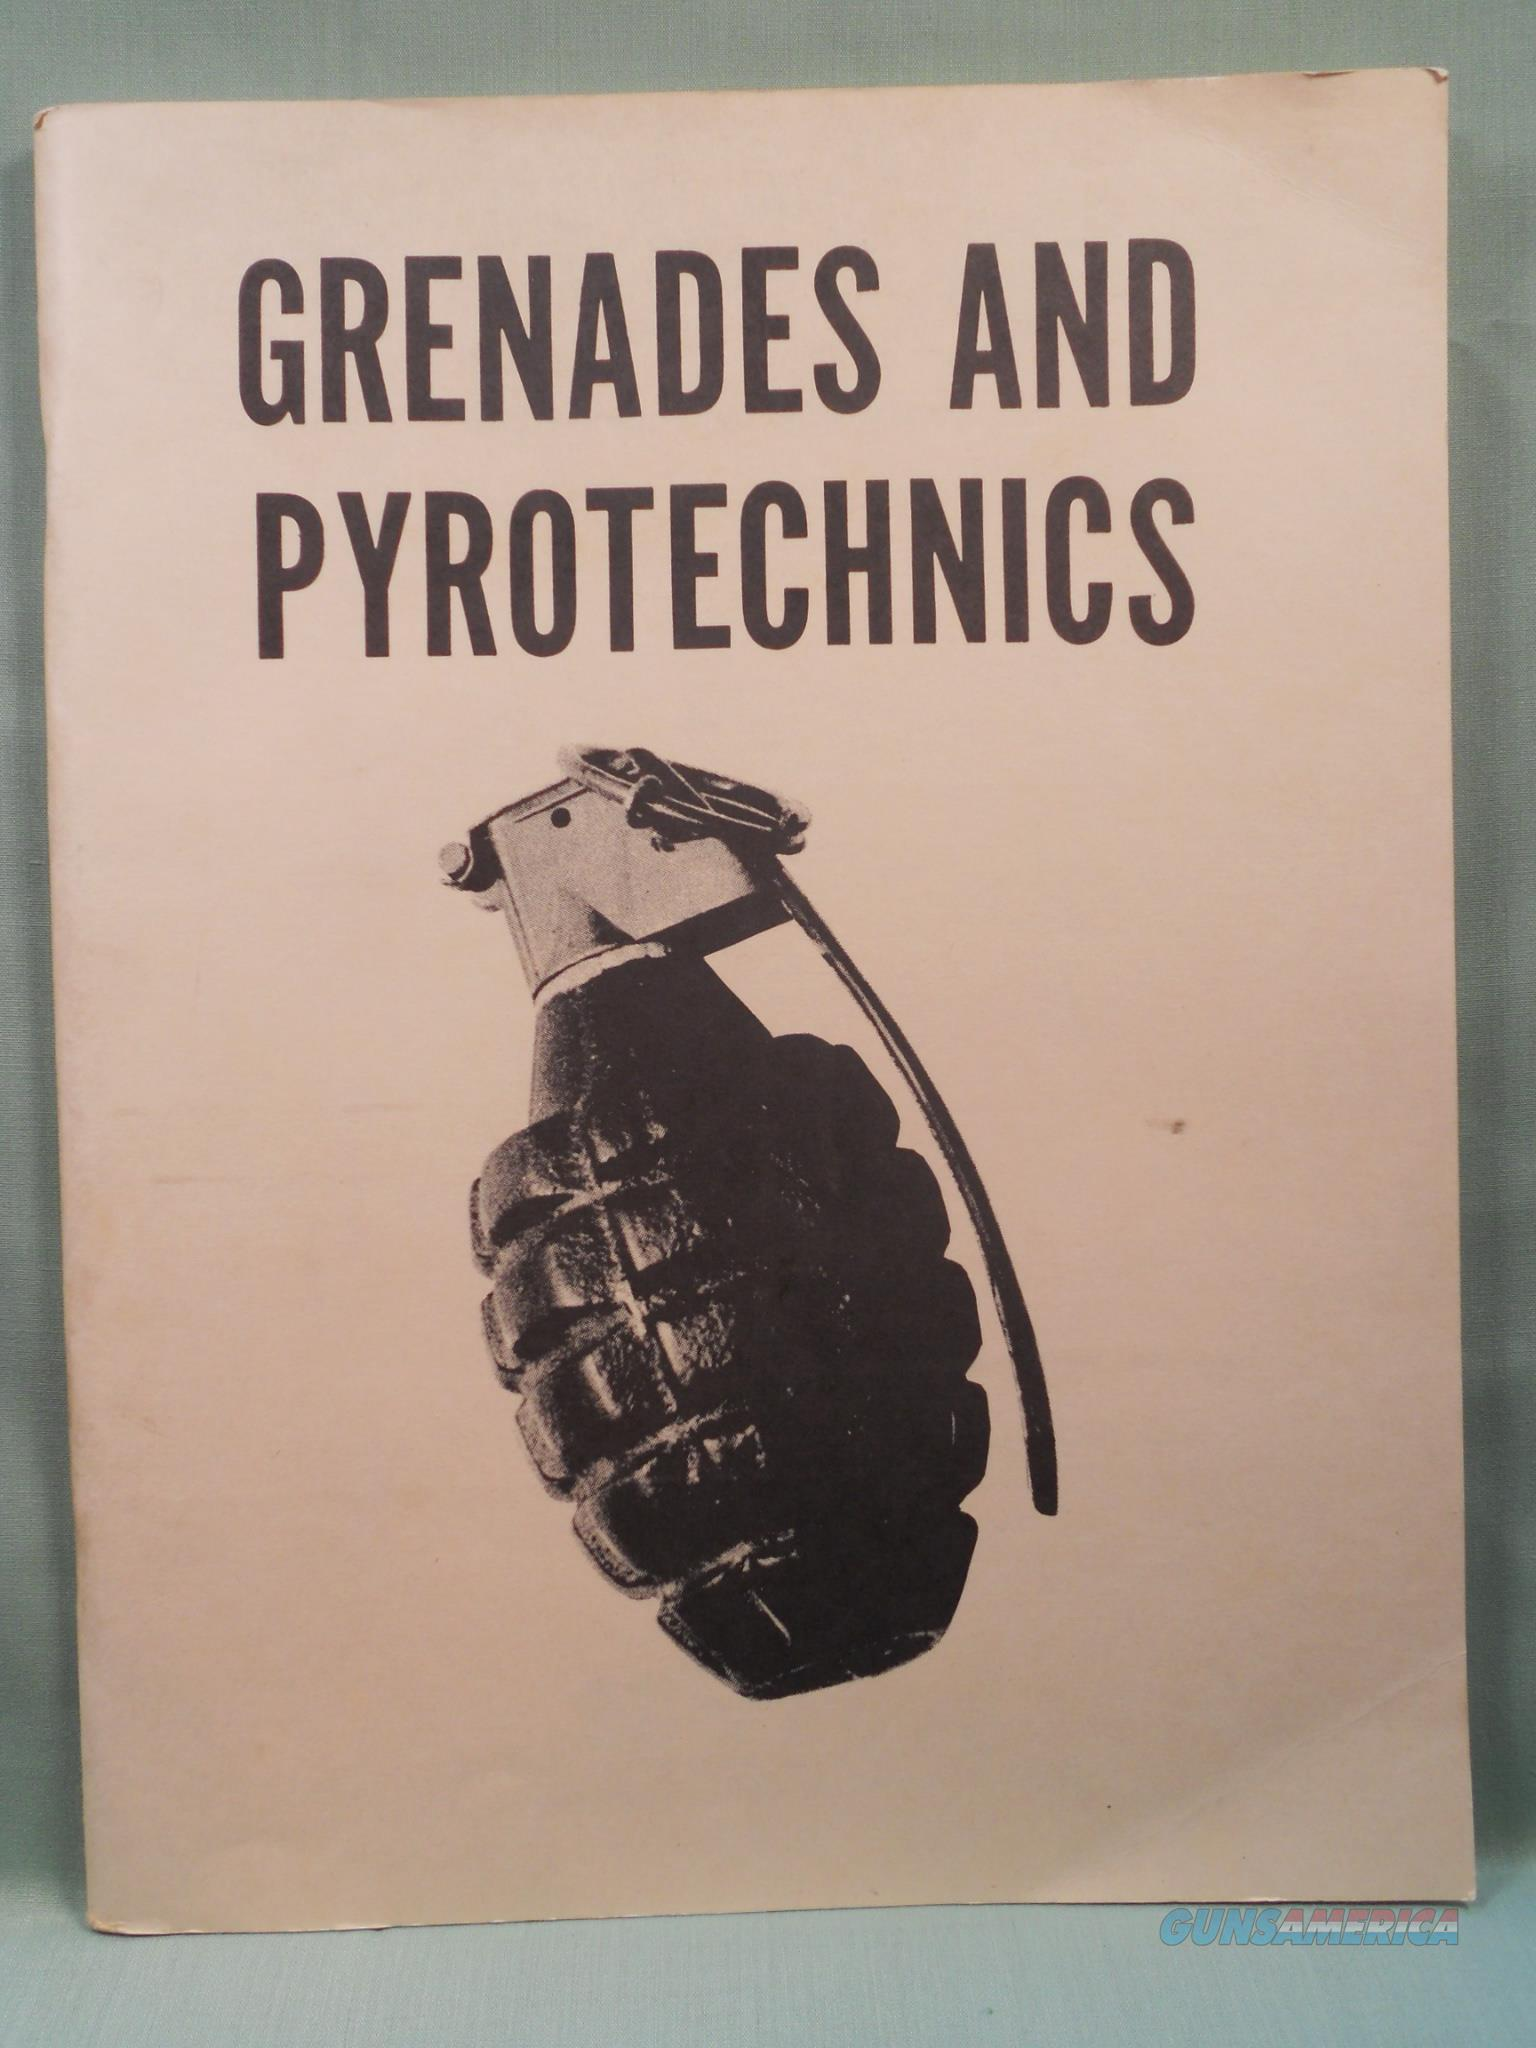 GRENADES AND PYROTECHNIC SIGNALS, FM 23-30, Dept. of Army, 1969,   Non-Guns > Ammunition